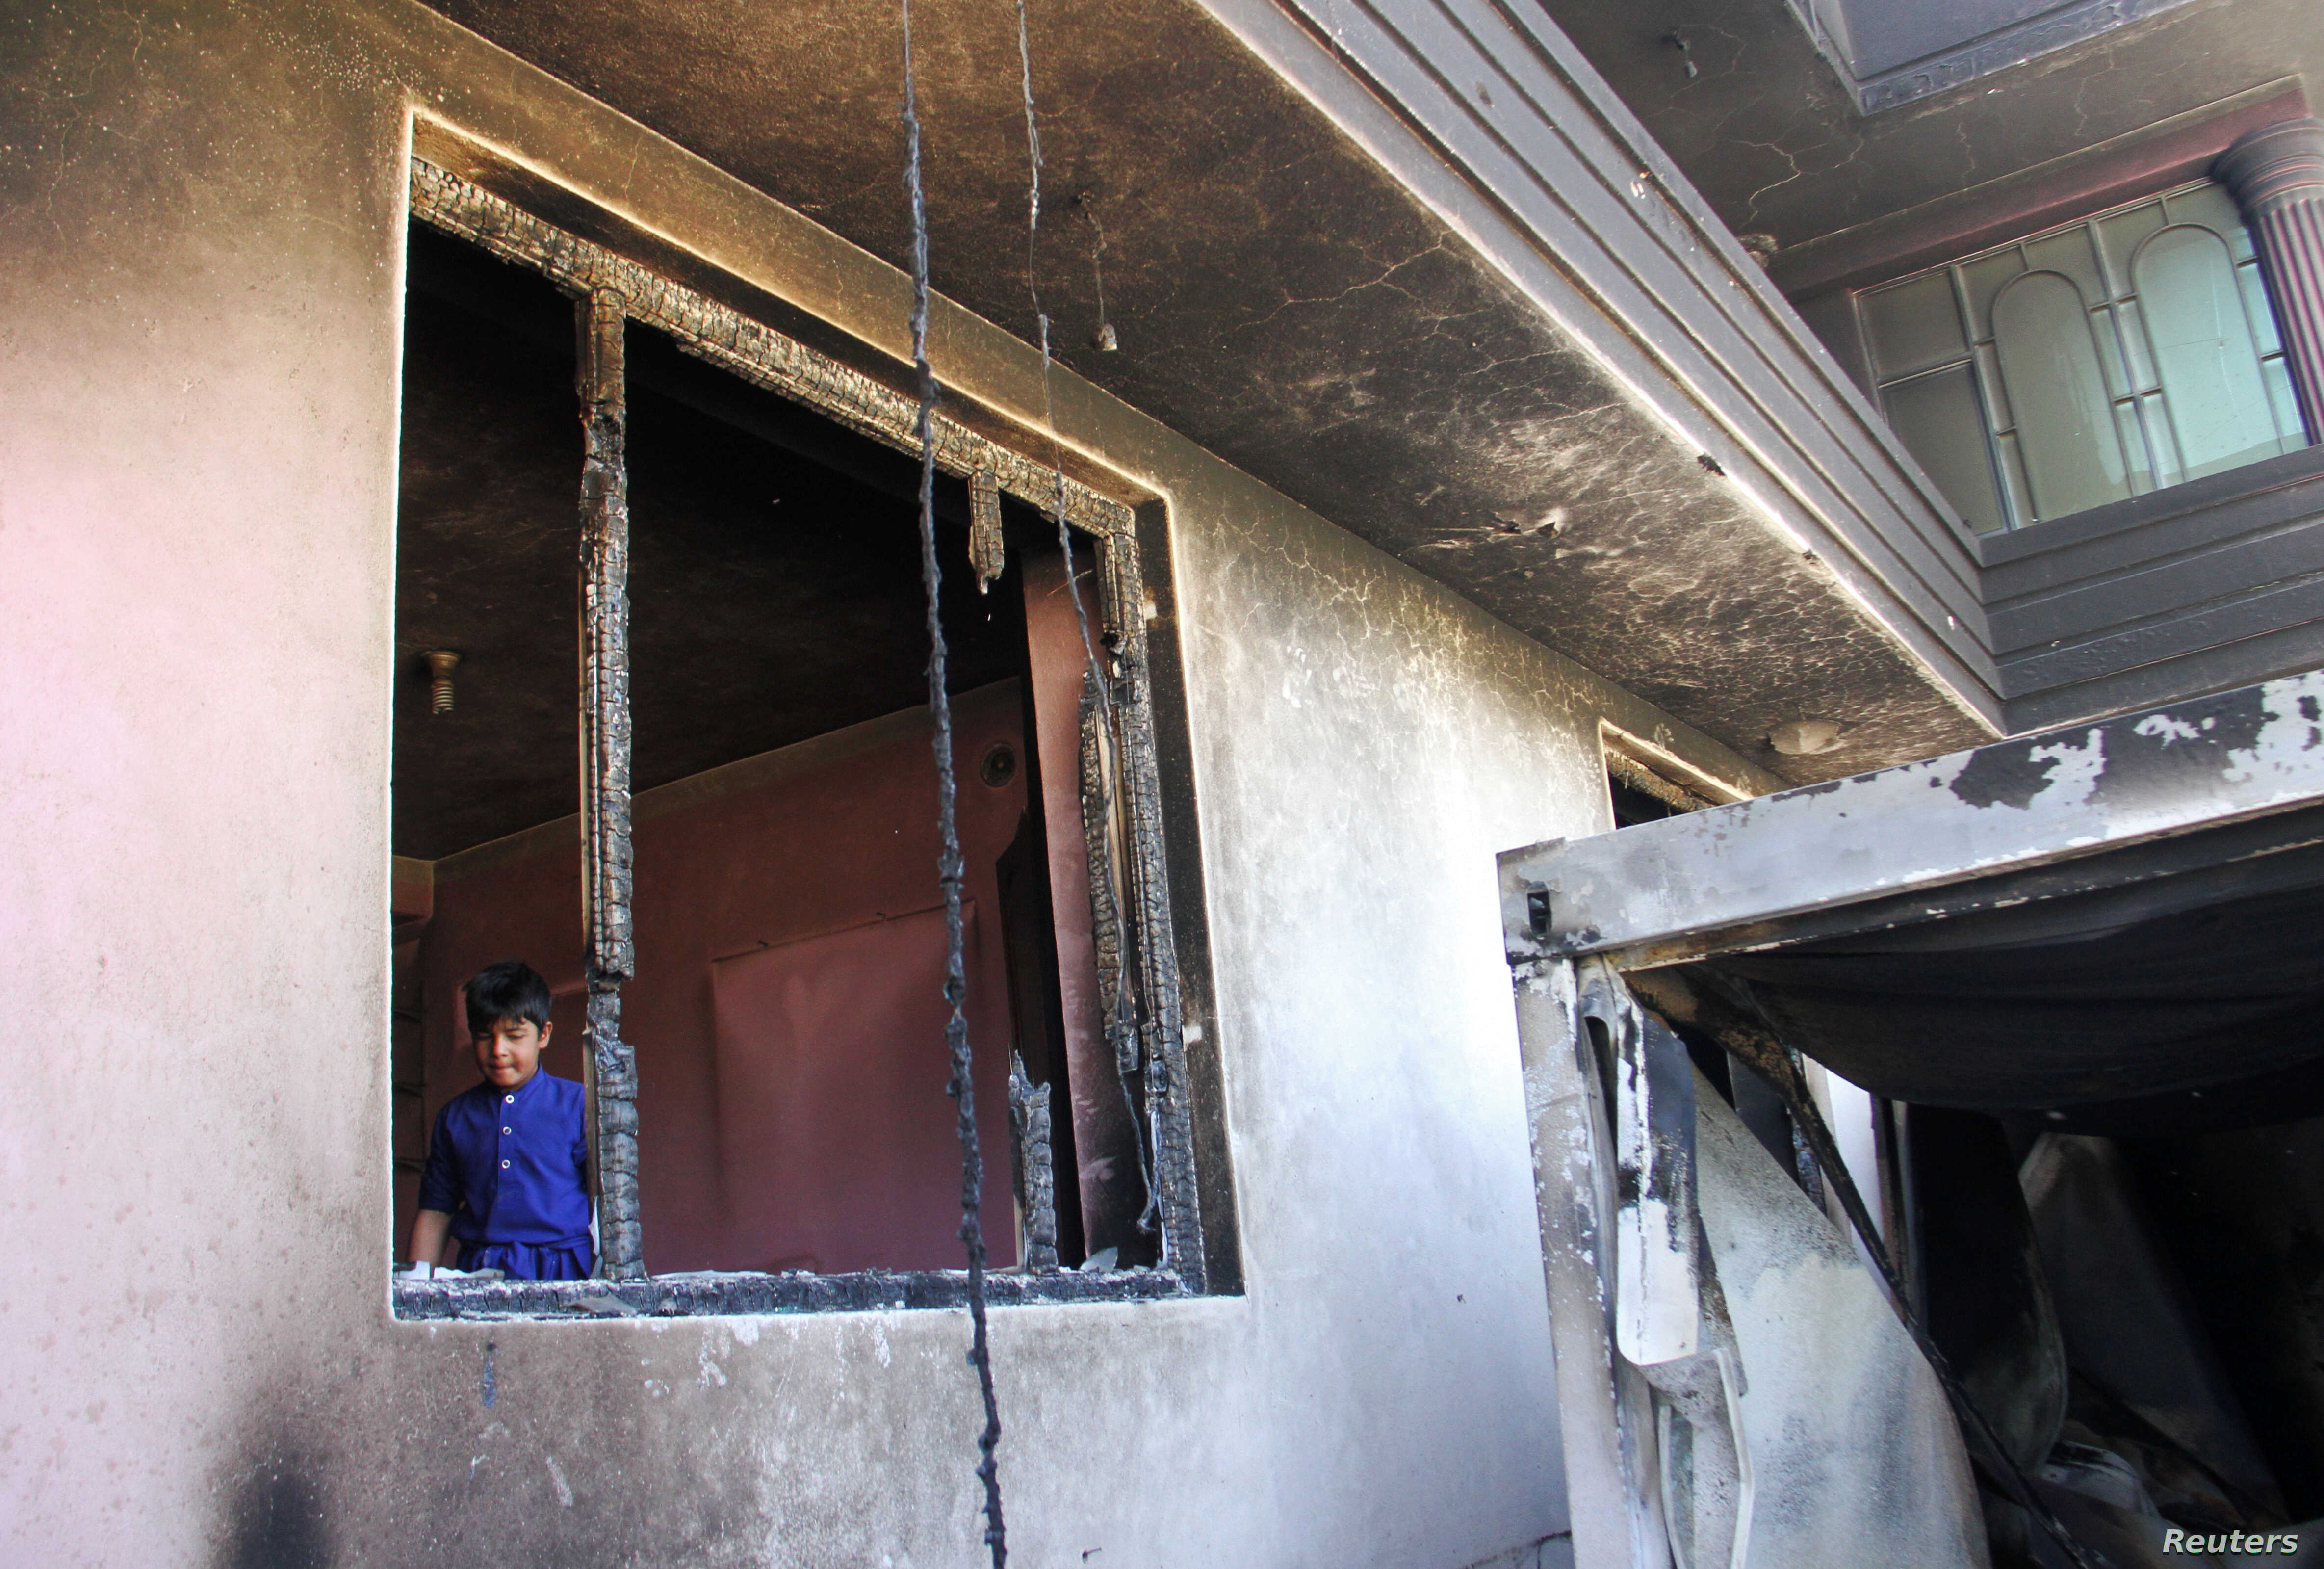 An Afghan boy is seen inside a burnt building after a Taliban attack in Ghazni city, Afghanistan, Aug. 15, 2018.